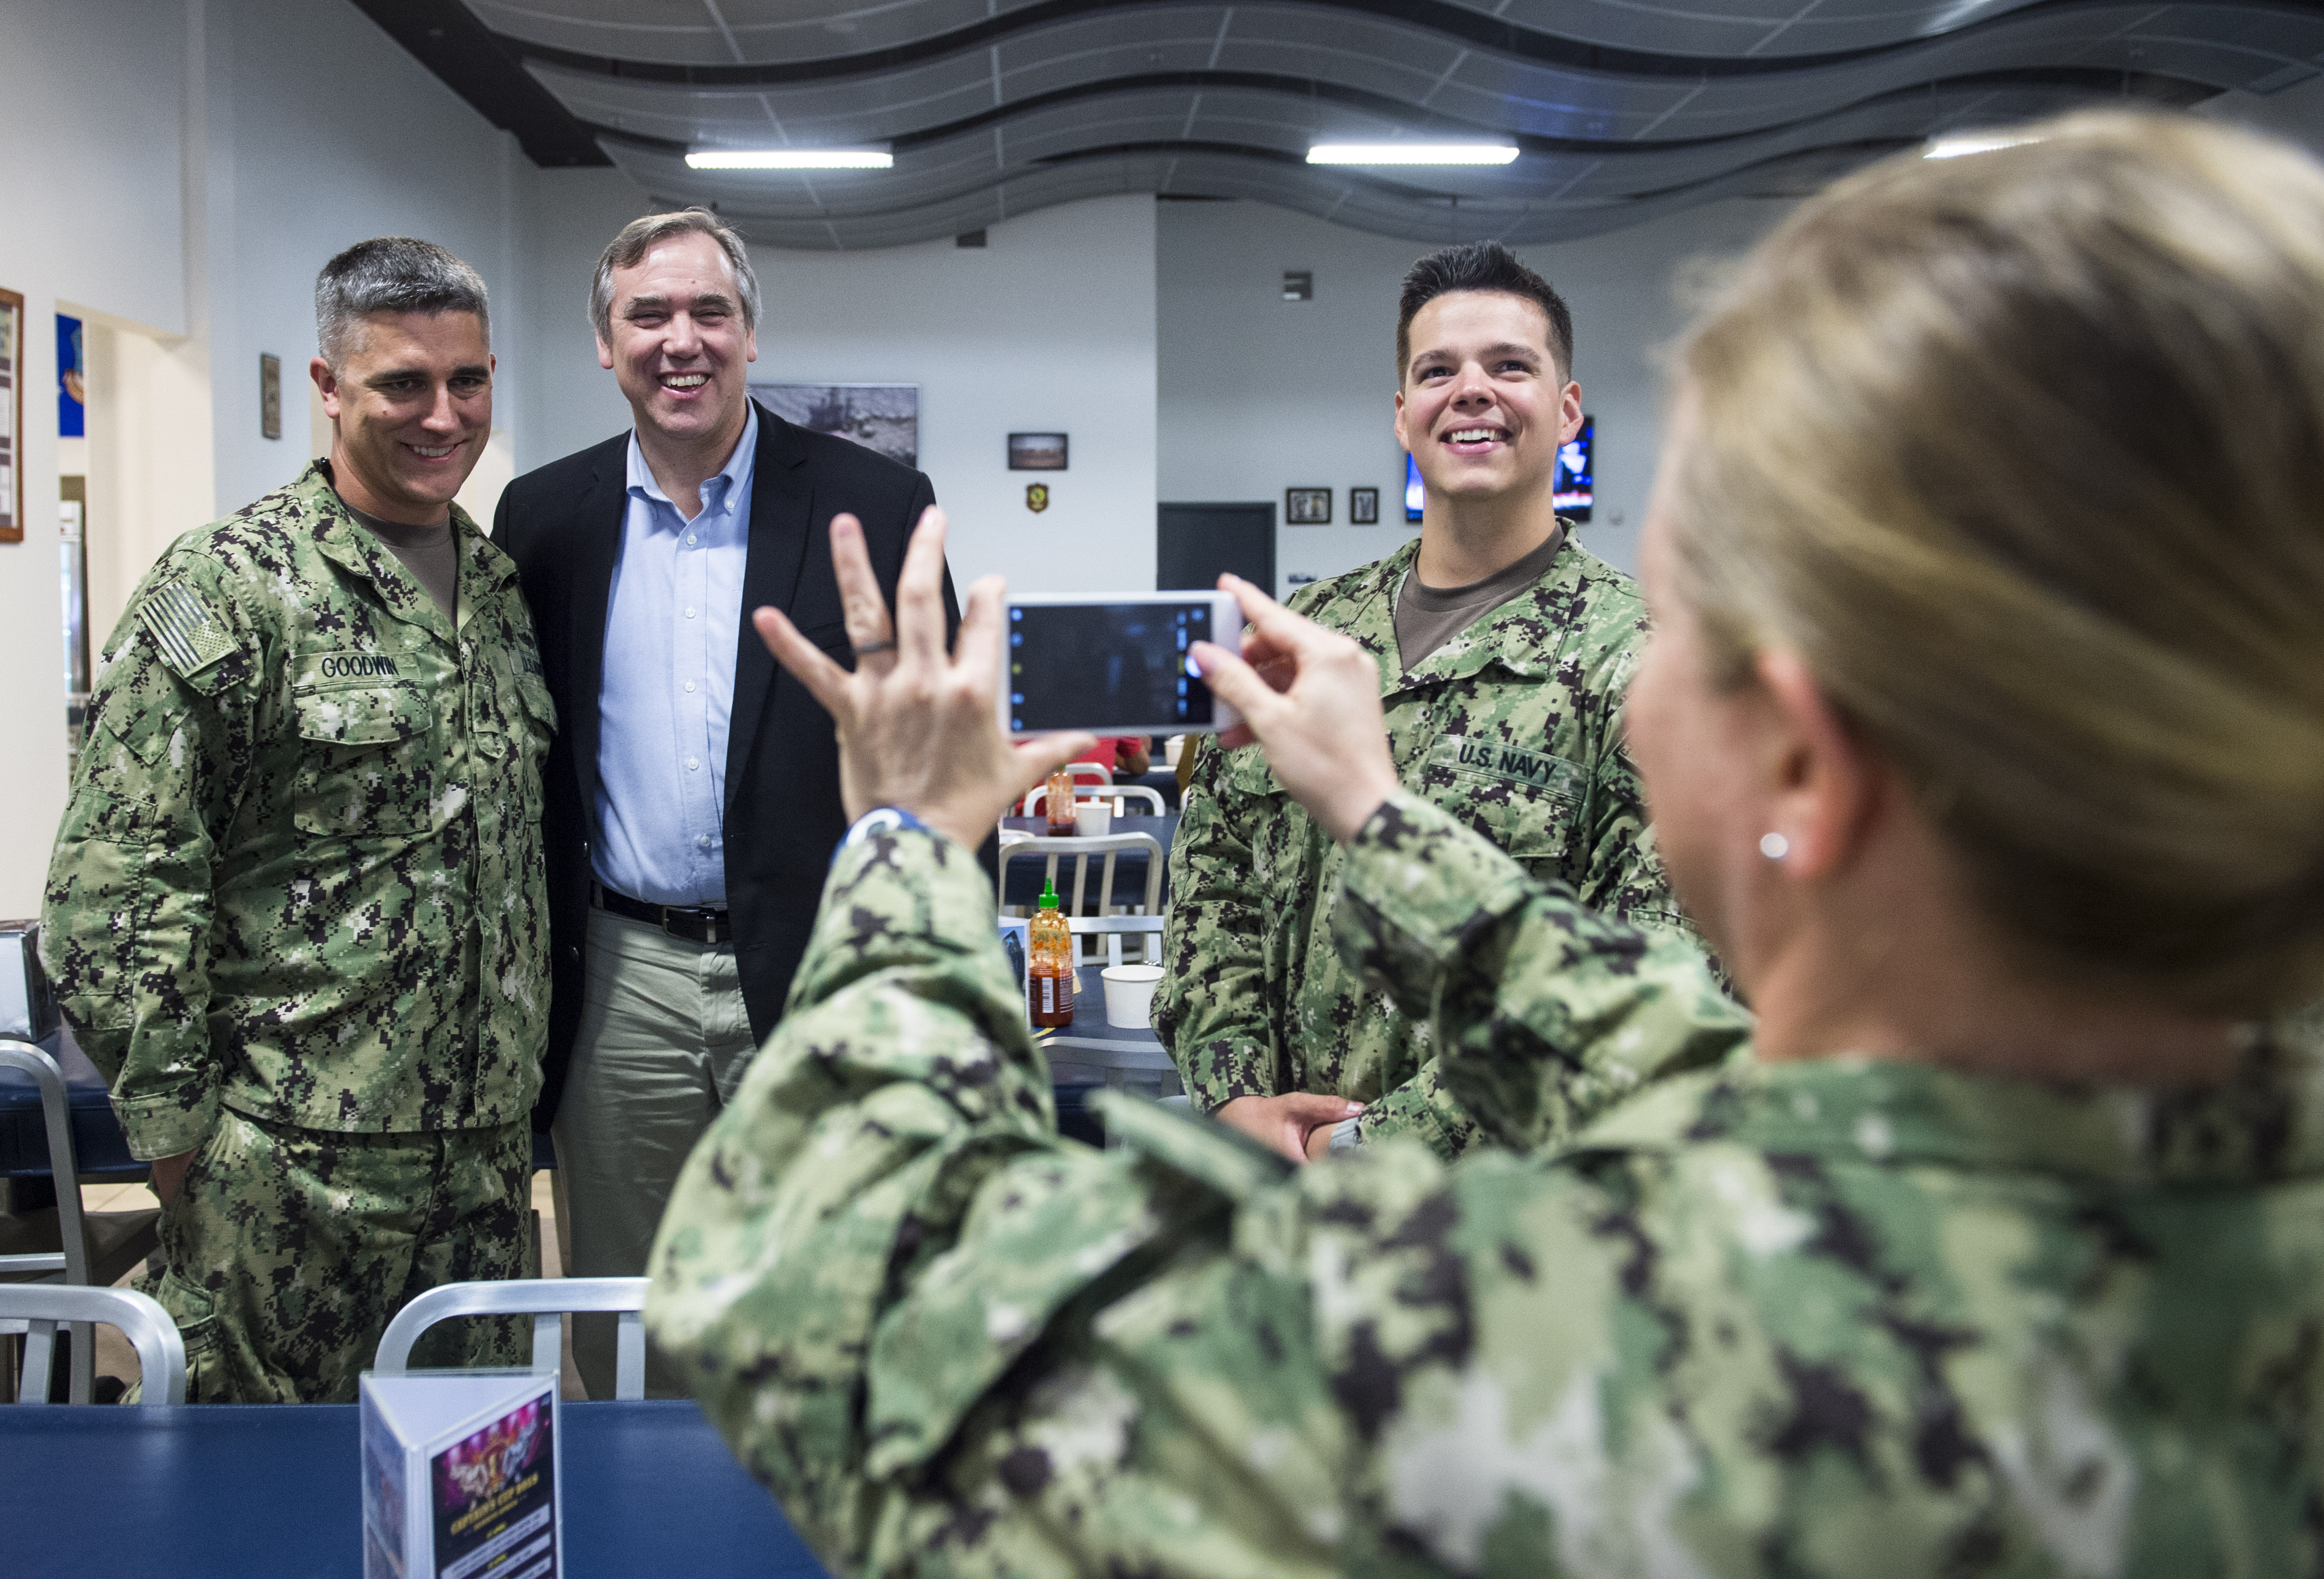 U.S. Sen. Jeff Merkley, Oregon, poses for a photo with a service member deployed to Camp Lemonnier, Djibouti, during a visit to the Combined Joint Task Force - Horn of Africa (CJTF-HOA) March 26, 2018. Merkley visited with service members at Camp Lemonnier before continuing his trip to other locations in East Africa. As a member of the U.S. Senate Foreign Relations Committee, Merkley's visit focused on the critical role that U.S. assistance plays as he examined famine-like conditions, severe food shortages, internally displaced persons and refugees in each location and how these factors affect counter-terrorism efforts within the CTJF-HOA area of responsibility. (U.S. Air Force photo by Staff Sgt. Timothy Moore)